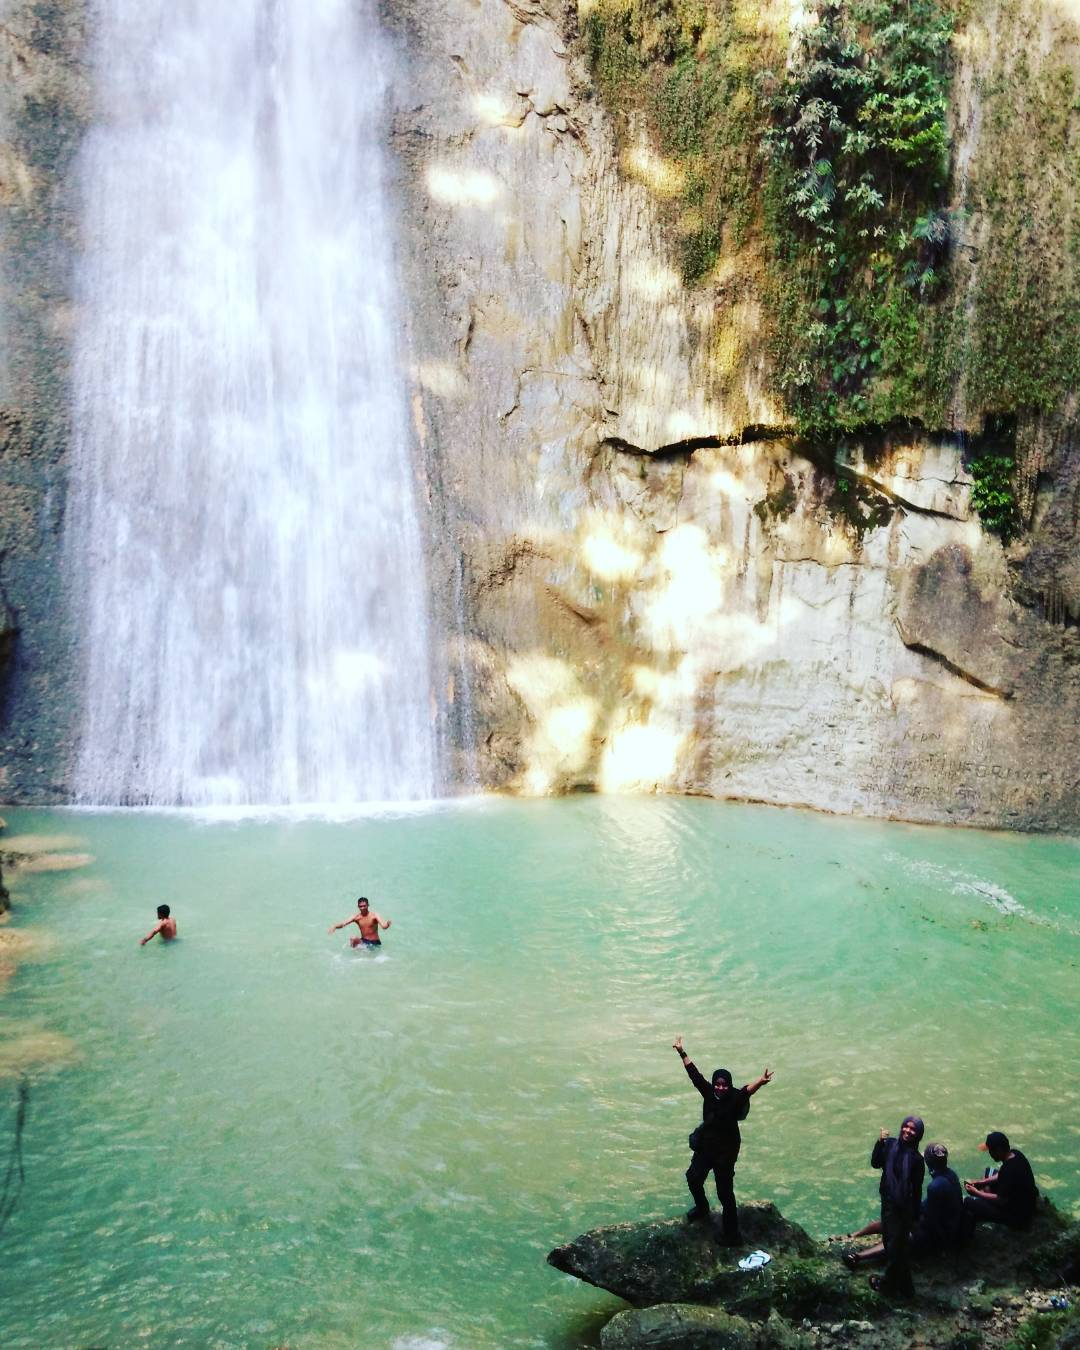 Air Terjun Samparona